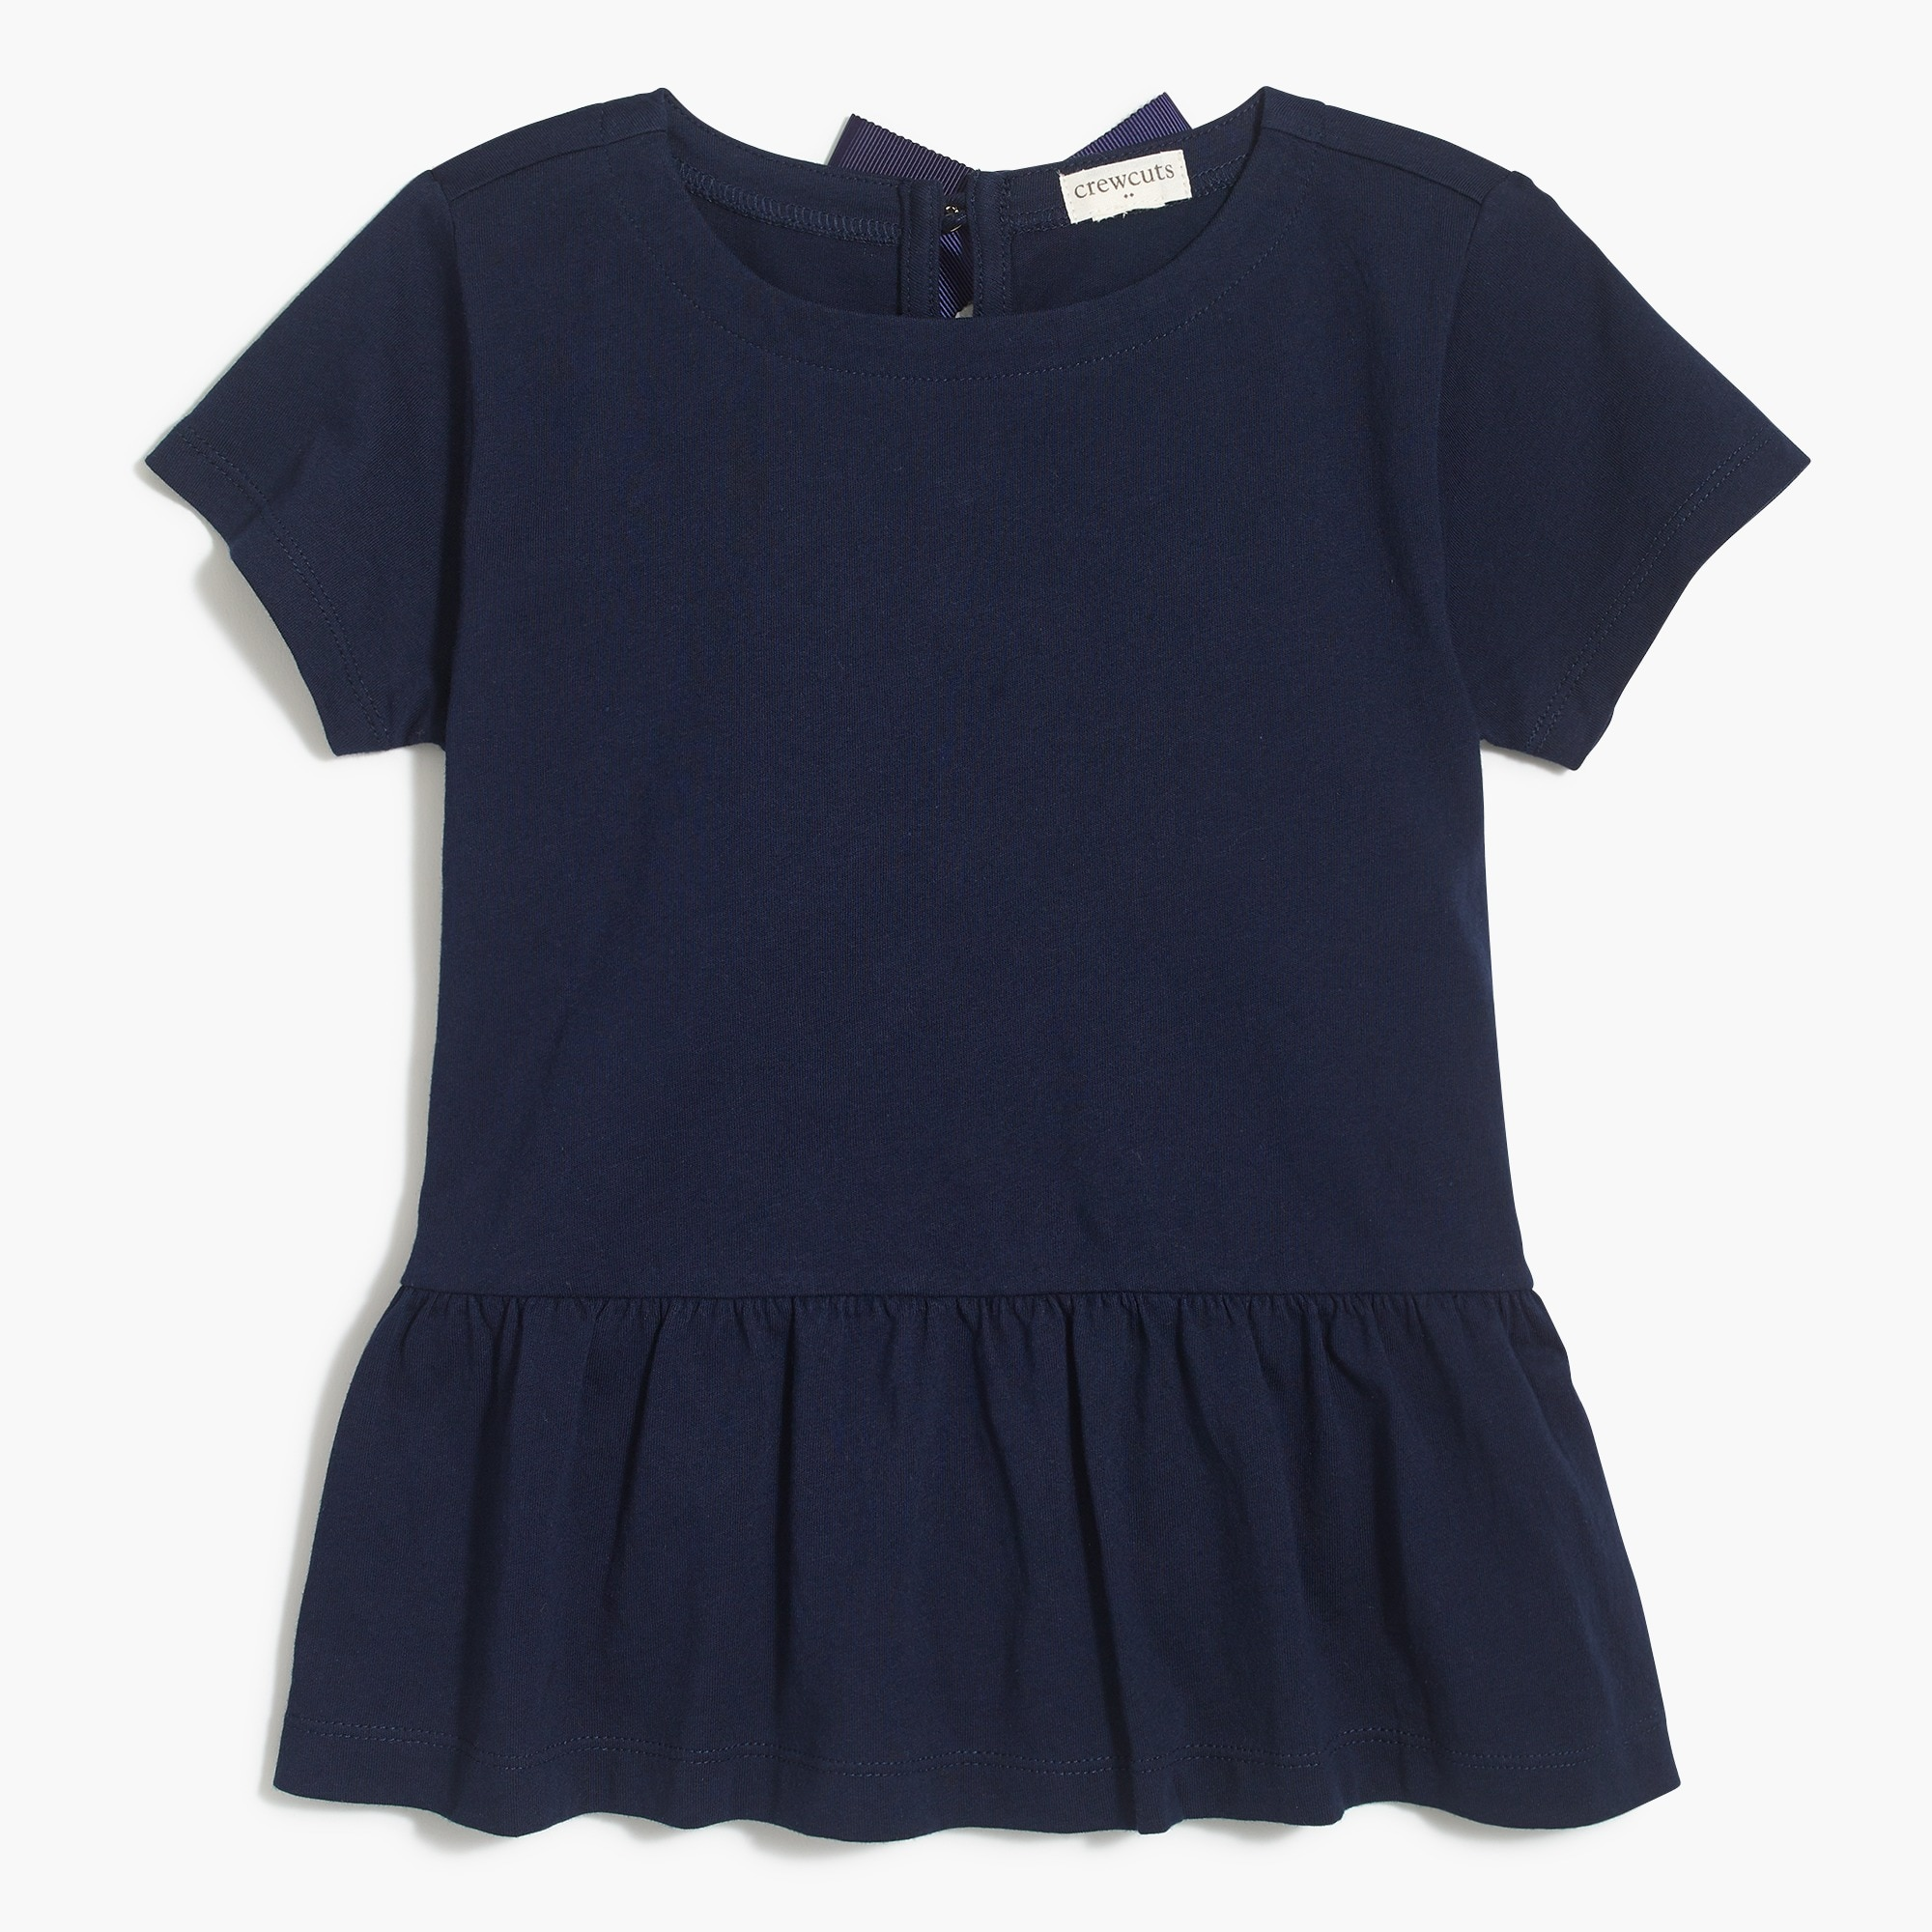 factory girls Girls' short-sleeve peplum T-shirt